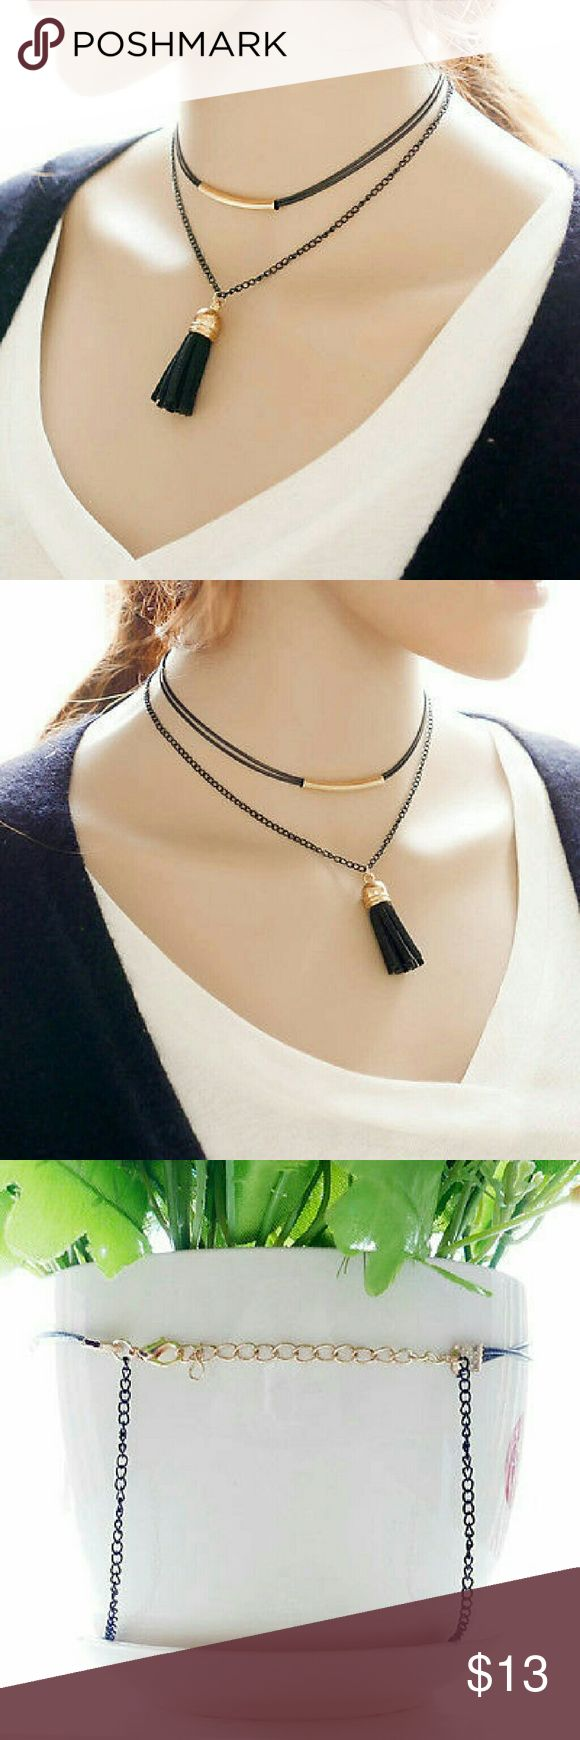 "Black Velvet Choker Necklace with Tassel Brand new with tags Length: Short choker 15"" Long choker 17"" Metal: alloy ( lead and nickel free ) Material: velvet Randomfindsboutique Jewelry Necklaces"